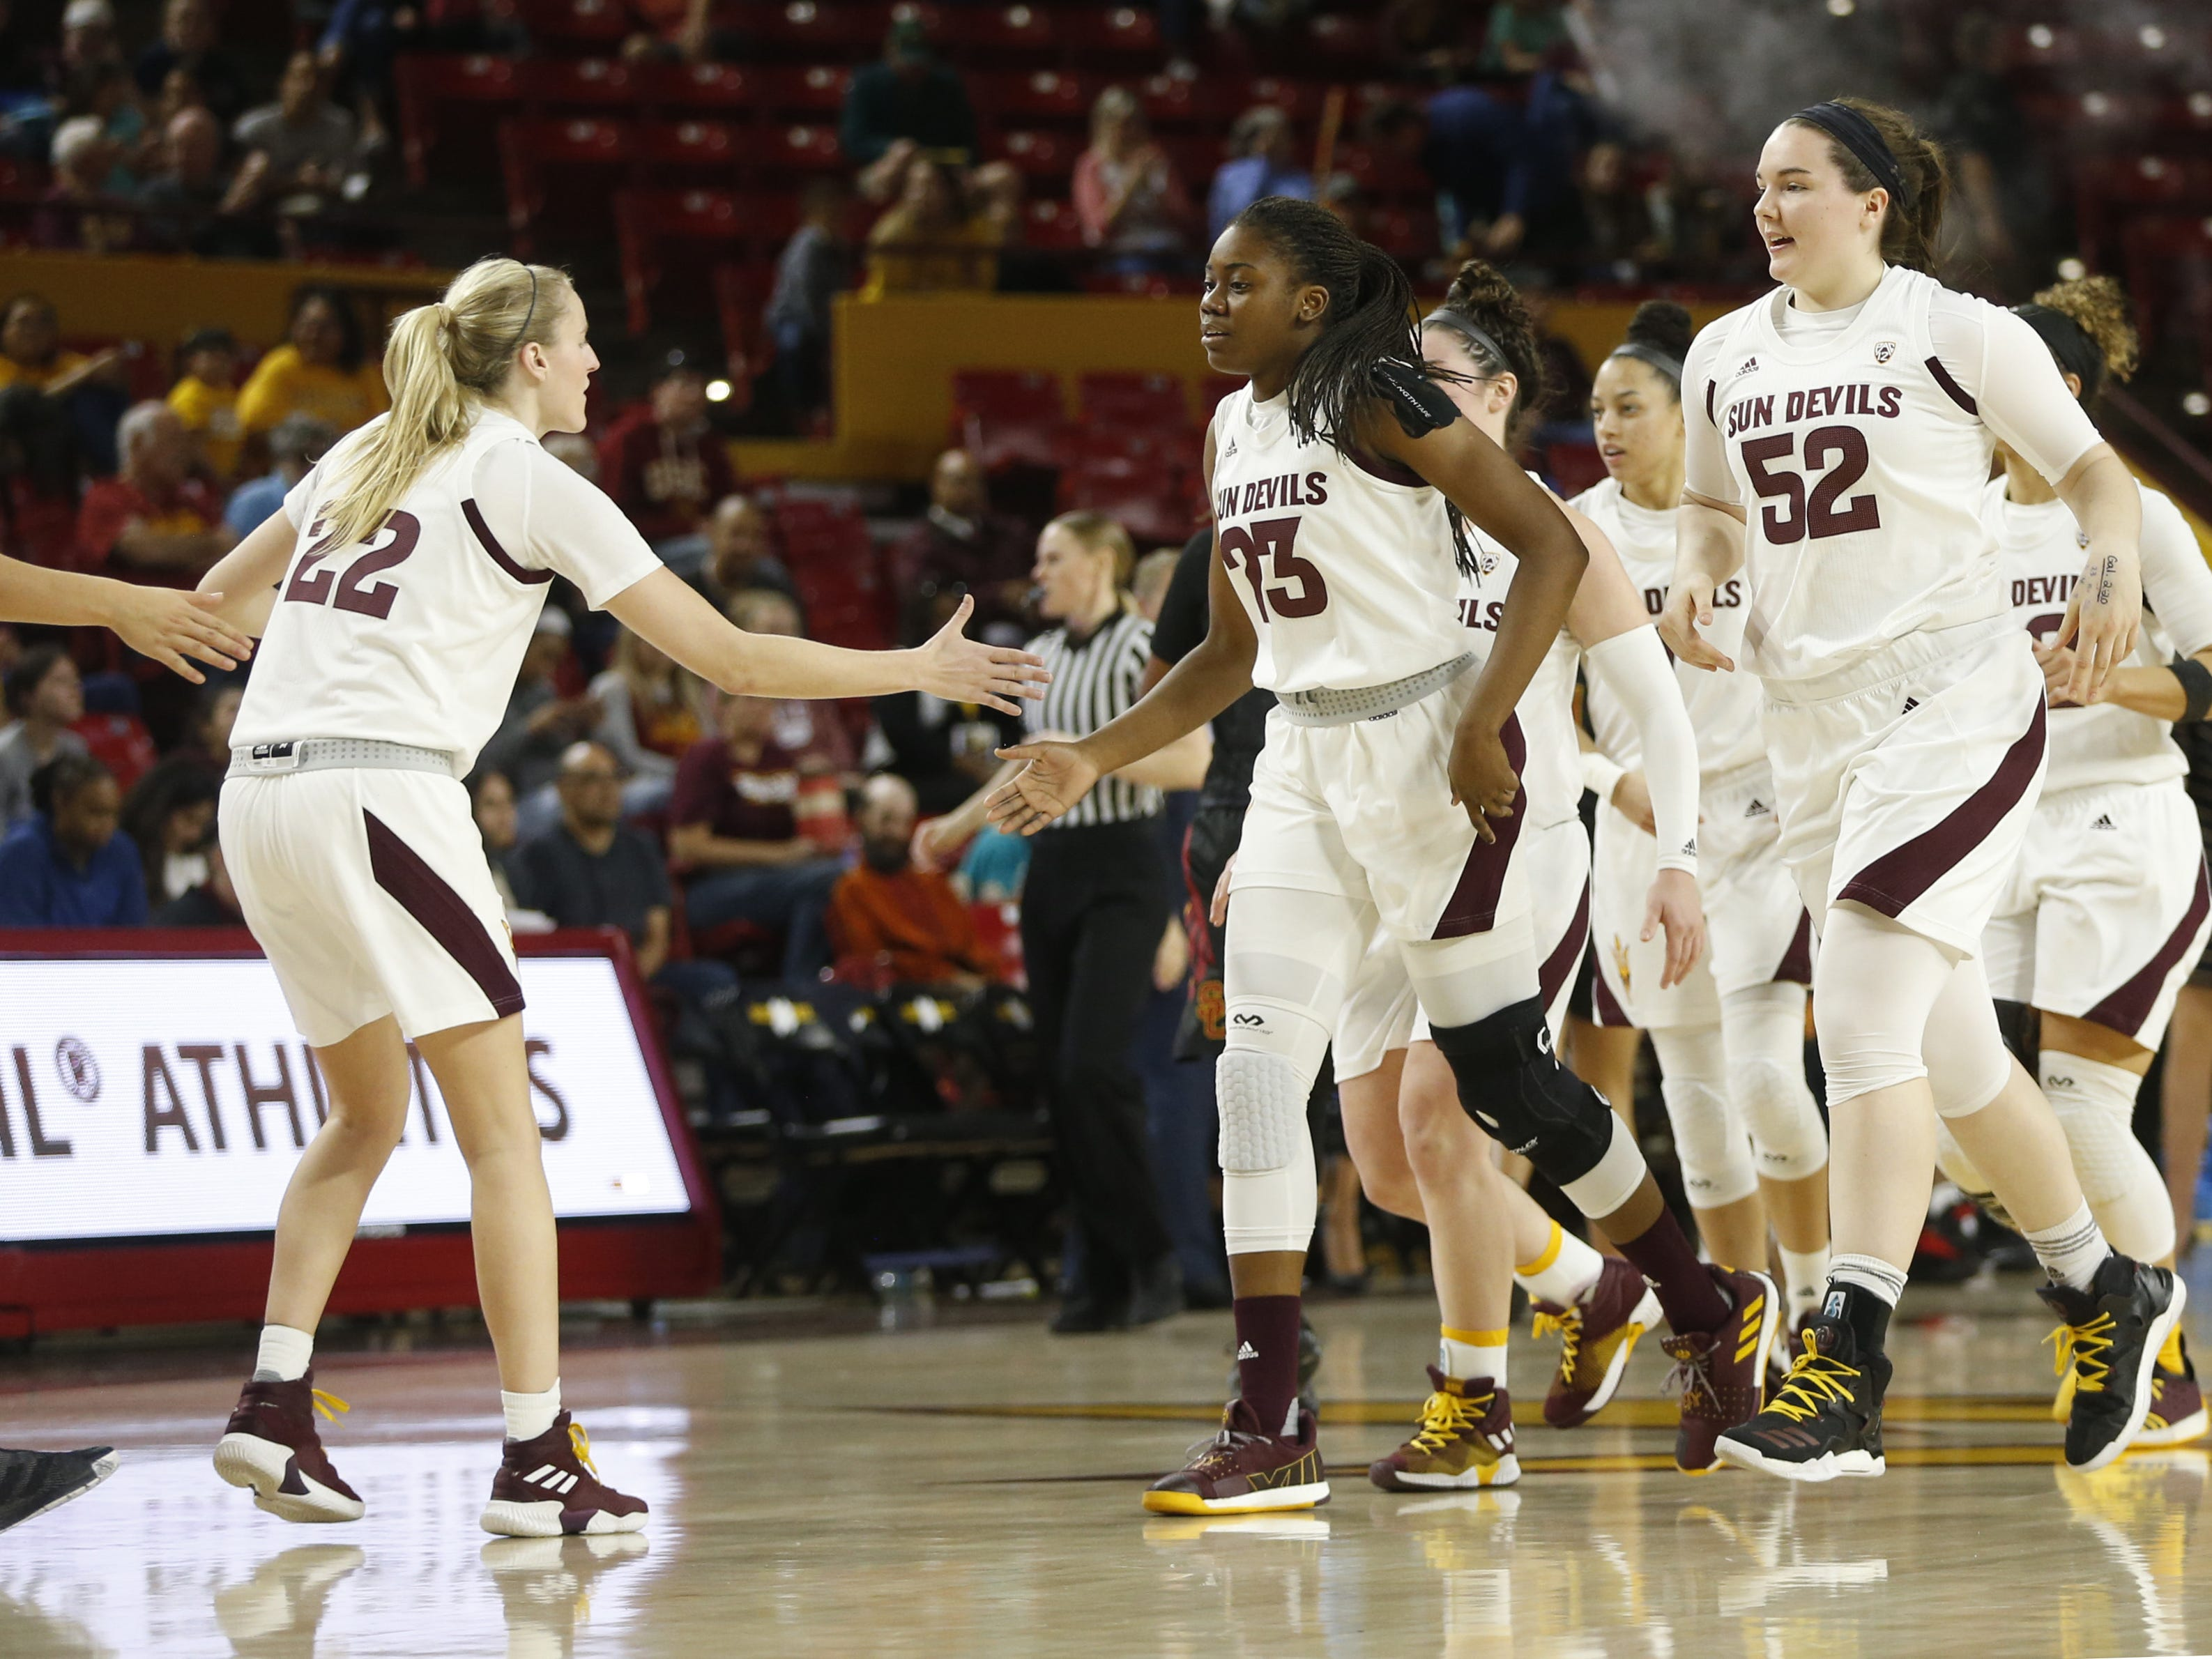 ASU's Courtney Ekmark (22) high-fives teammate Iris Mbulito (23) during the second half against USC at Wells Fargo Arena in Tempe, Ariz. on January 27, 2019.